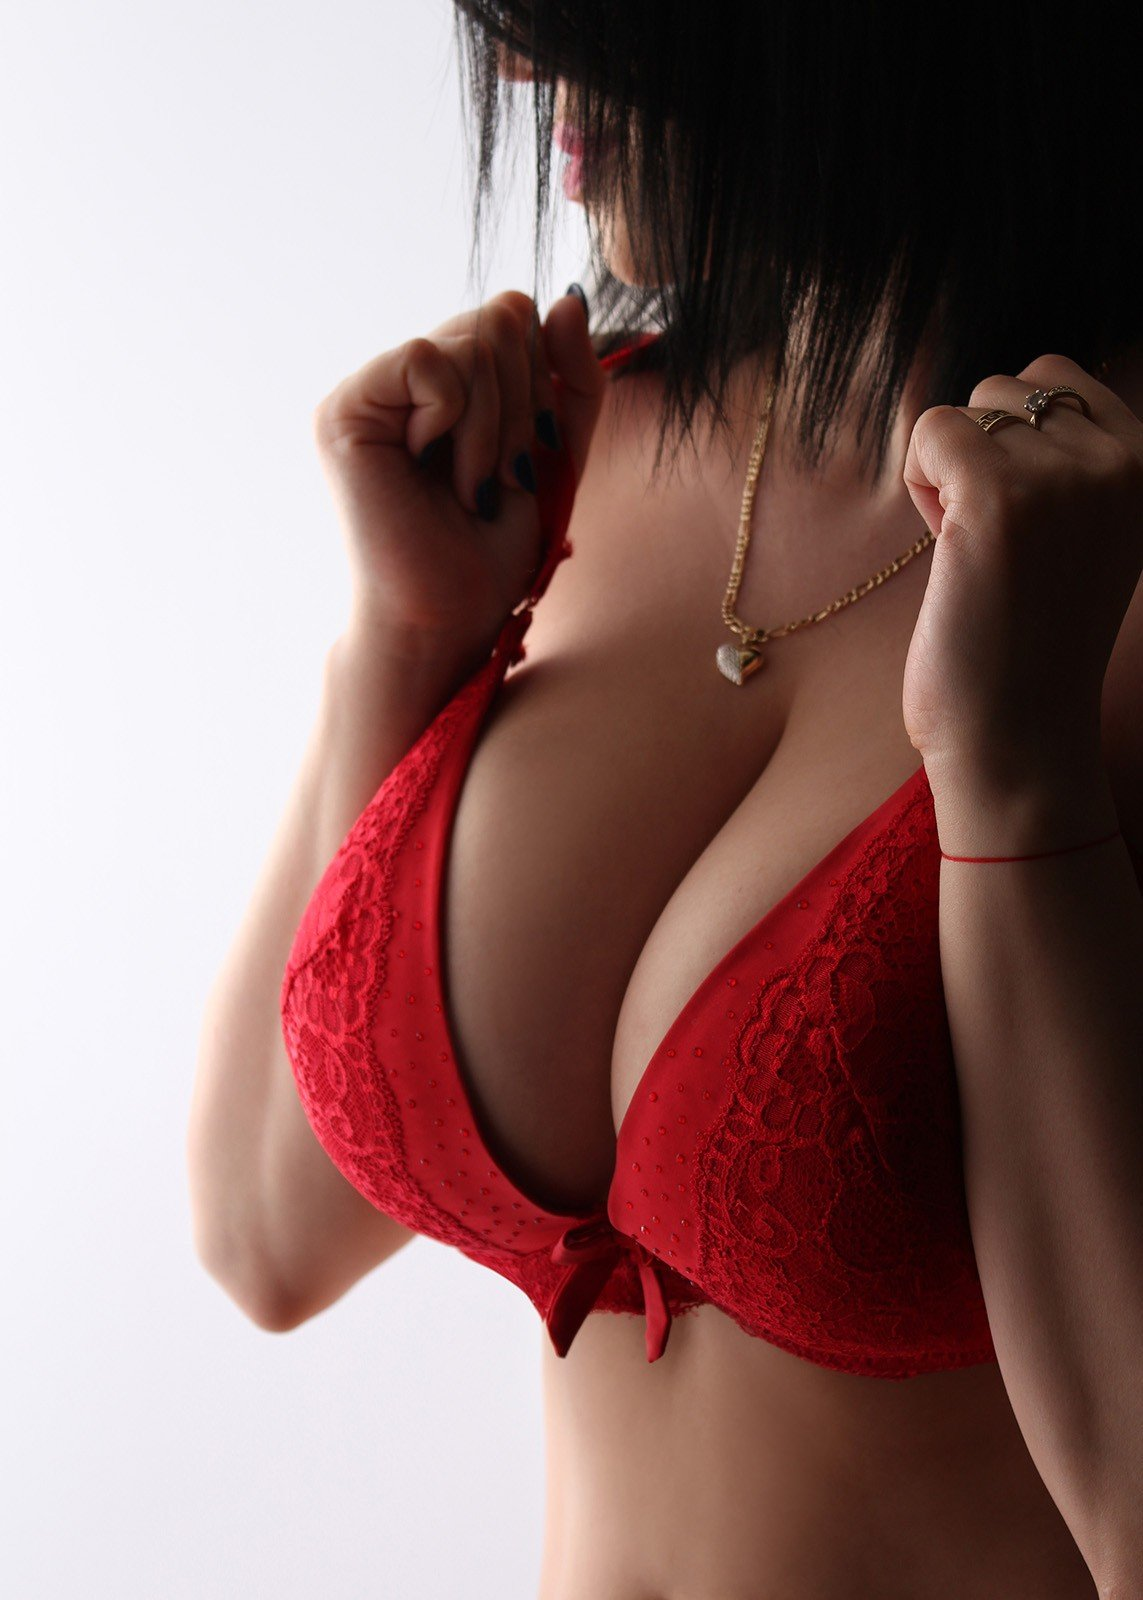 Ruby (23), escort a Berlin, Berlin, Germania